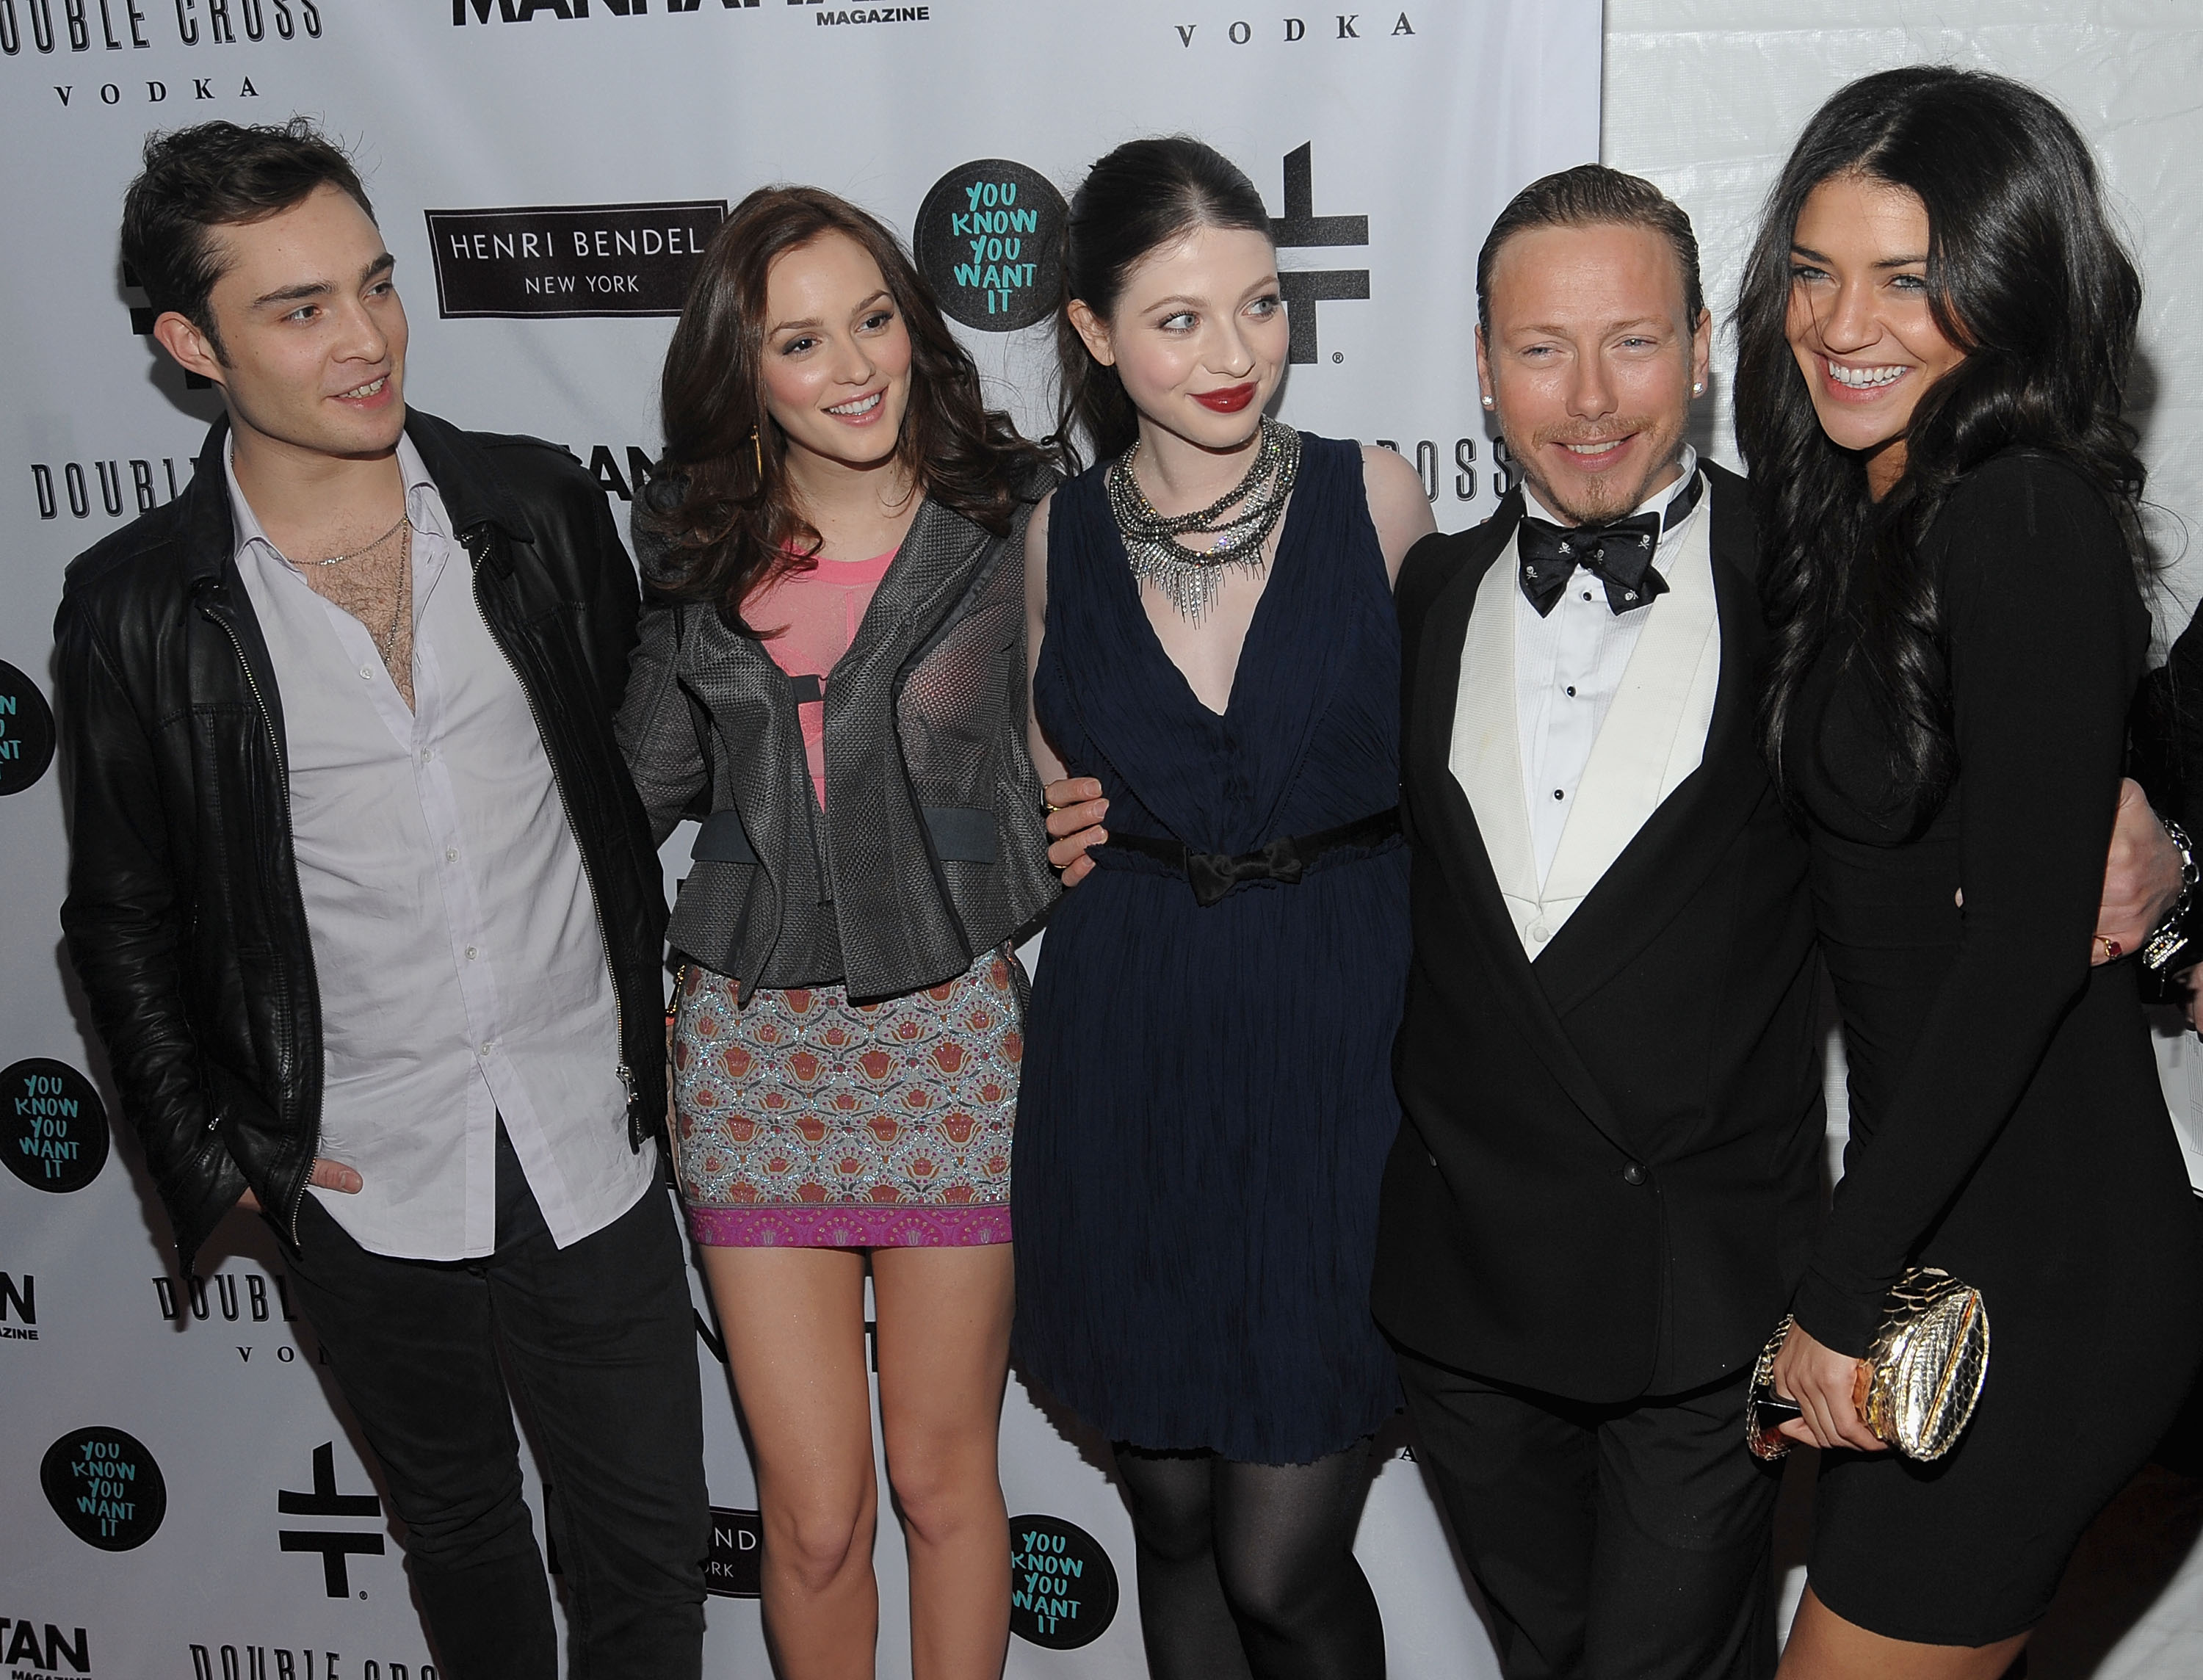 Ed Westwick, Leighton Meester, Michelle Trachtenberg and Jessica Szohr attended a party at NYC's Henri Bendel in January 2010.